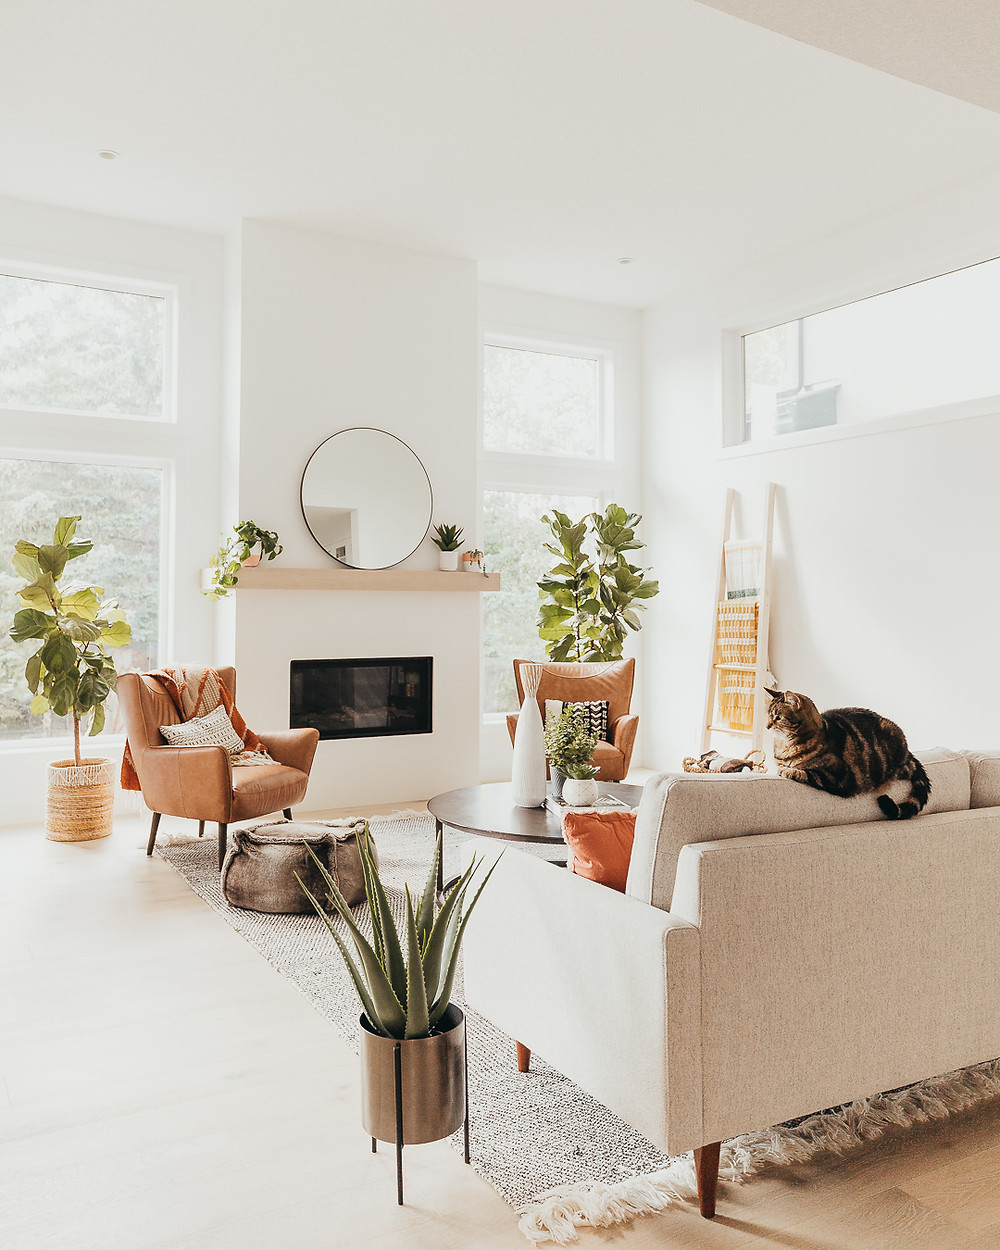 A white Scandinavian living room features light oak wood floors with a wool rug, light coloured sofa with a brown cat on it, brown fur pouf, two brown leather chairs with pillows, two fiddle leaf fig plants in front of large windows, a metal round coffee table, a wicker basket holding a throw, and a linear fireplace with a light wood mantel holding a round mirror and some plants.